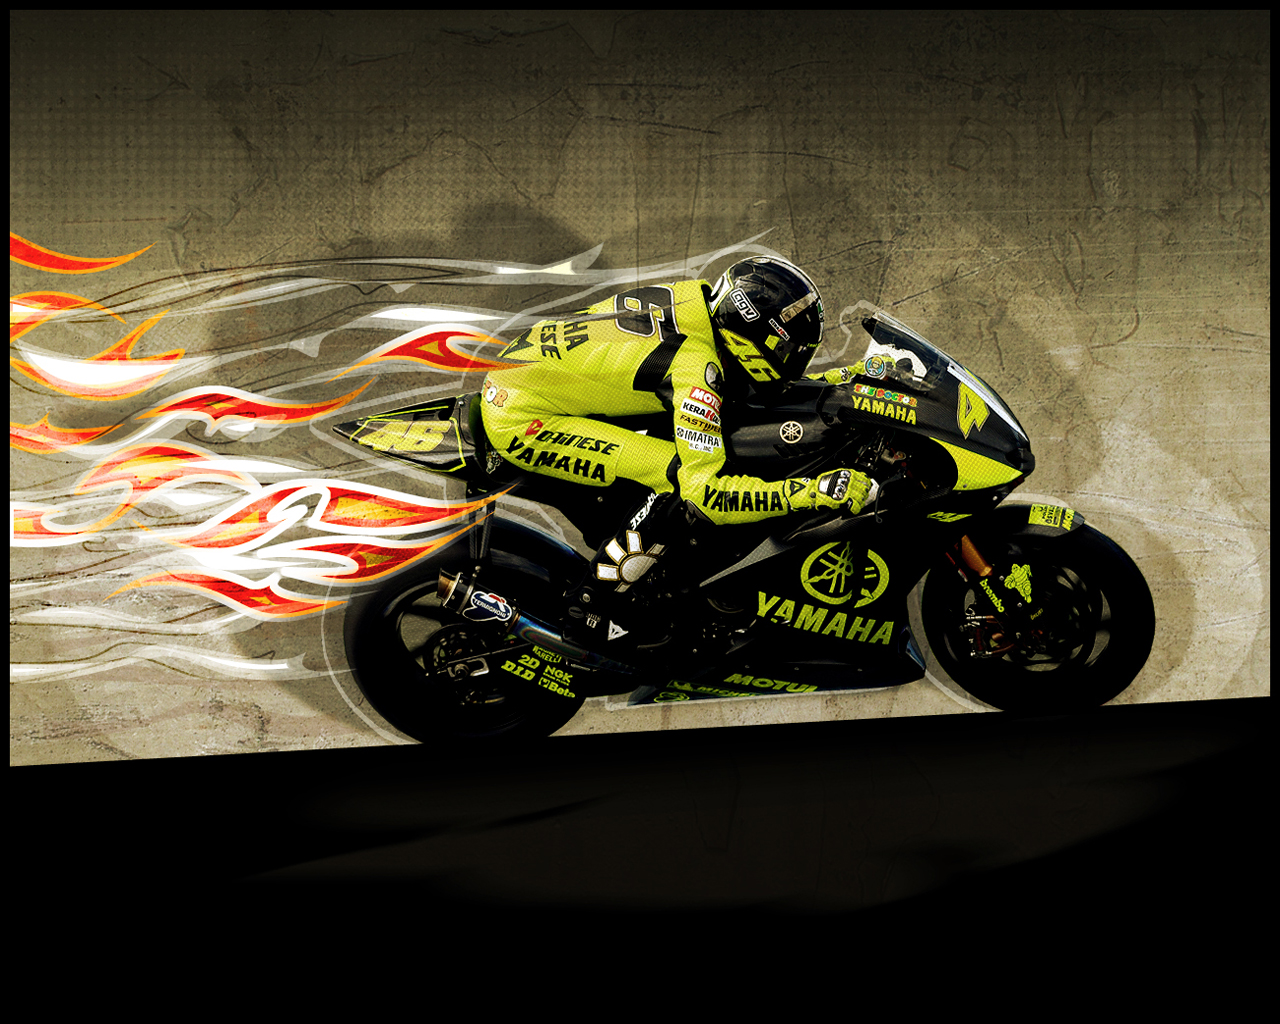 valentino rossi 46 the doctor Photo